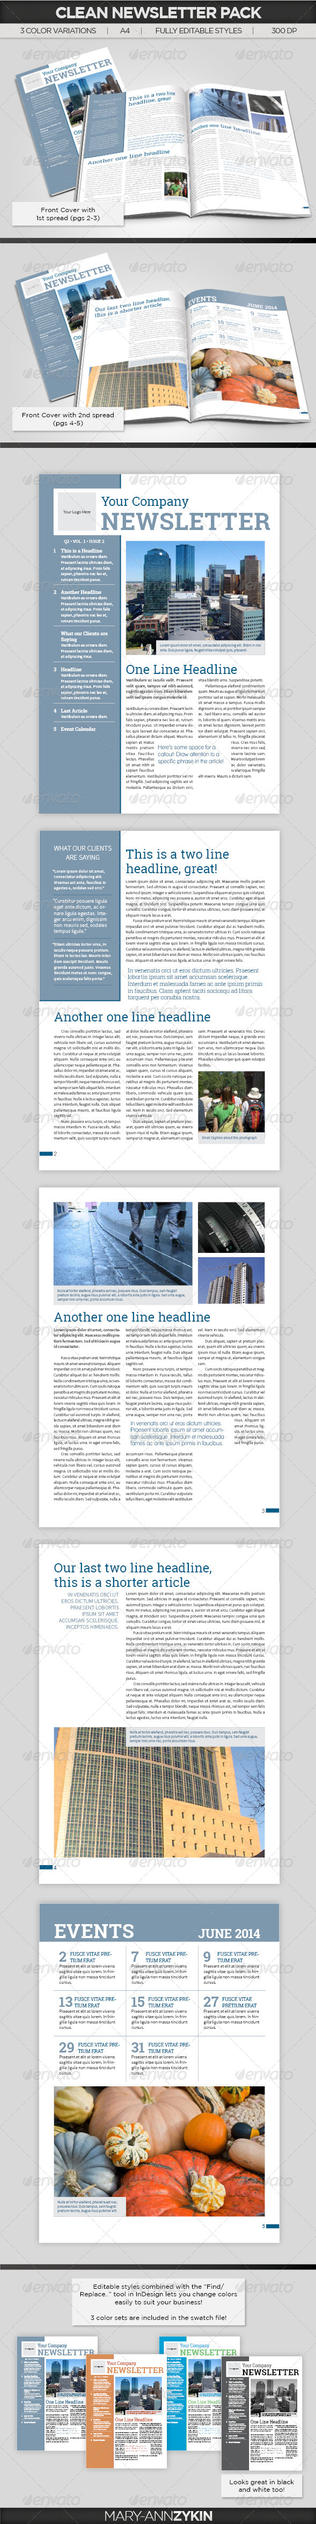 Clean Newsletter Template by FIRSTxAIDxKIT